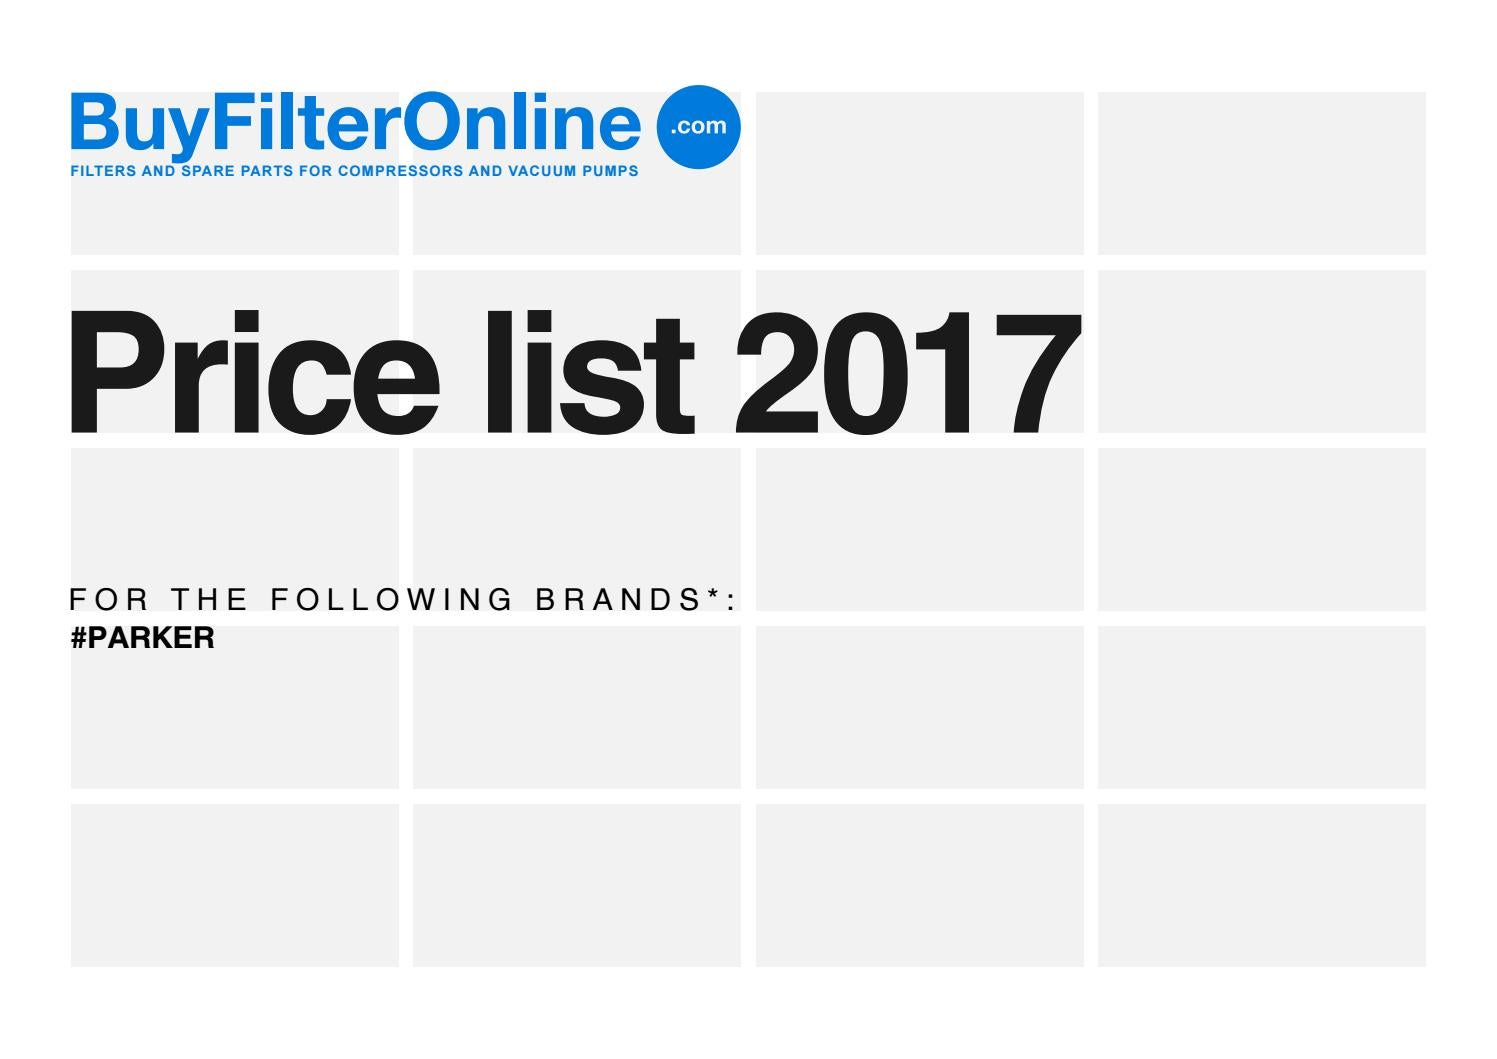 BuyFilterOnline com - Filters for compressors - Price List